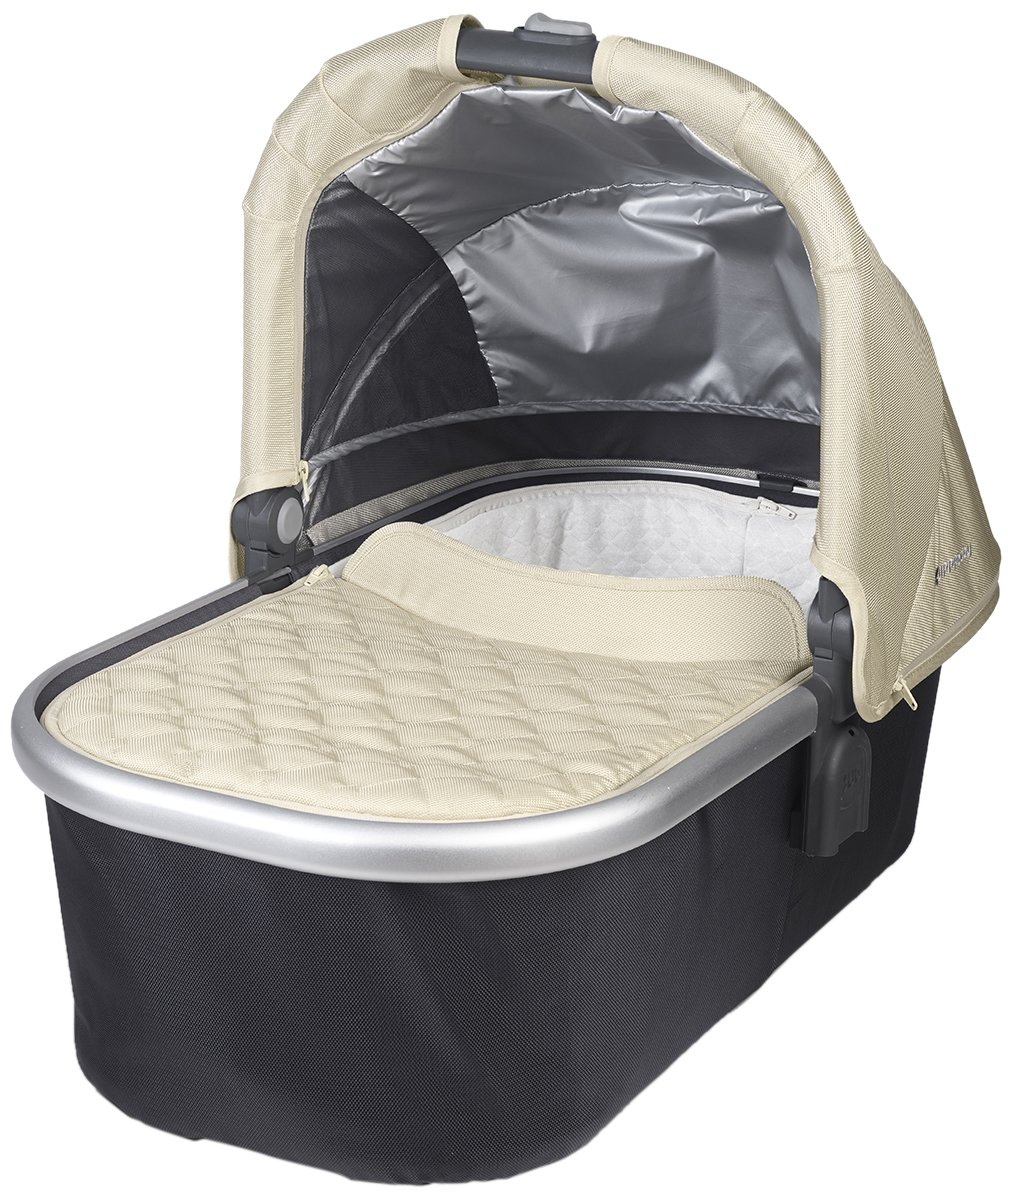 UPPAbaby Carry Cot, Taylor Navy DCUK Ltd 0223-TAY